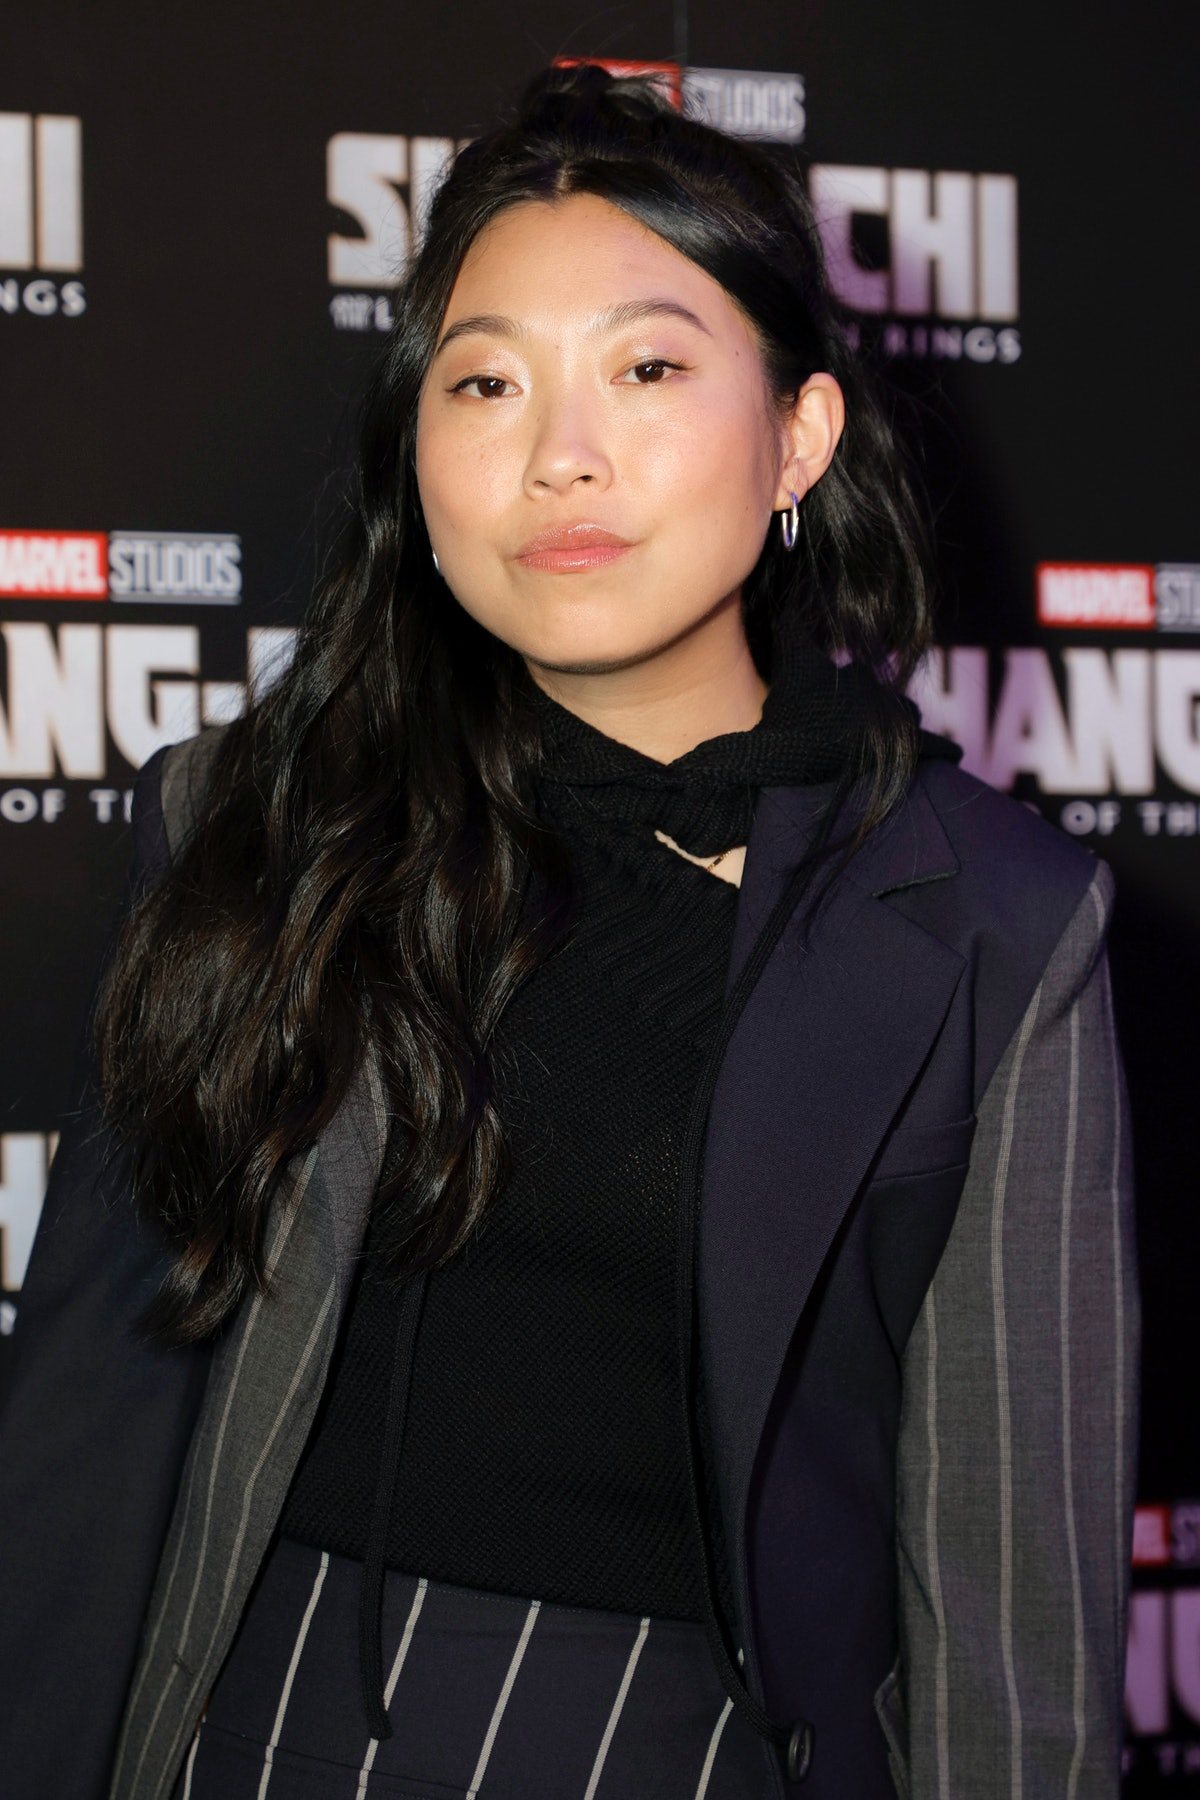 NEW YORK, NEW YORK - AUGUST 30: Awkwafina attends the Gold House special screening of Marvel Studios...